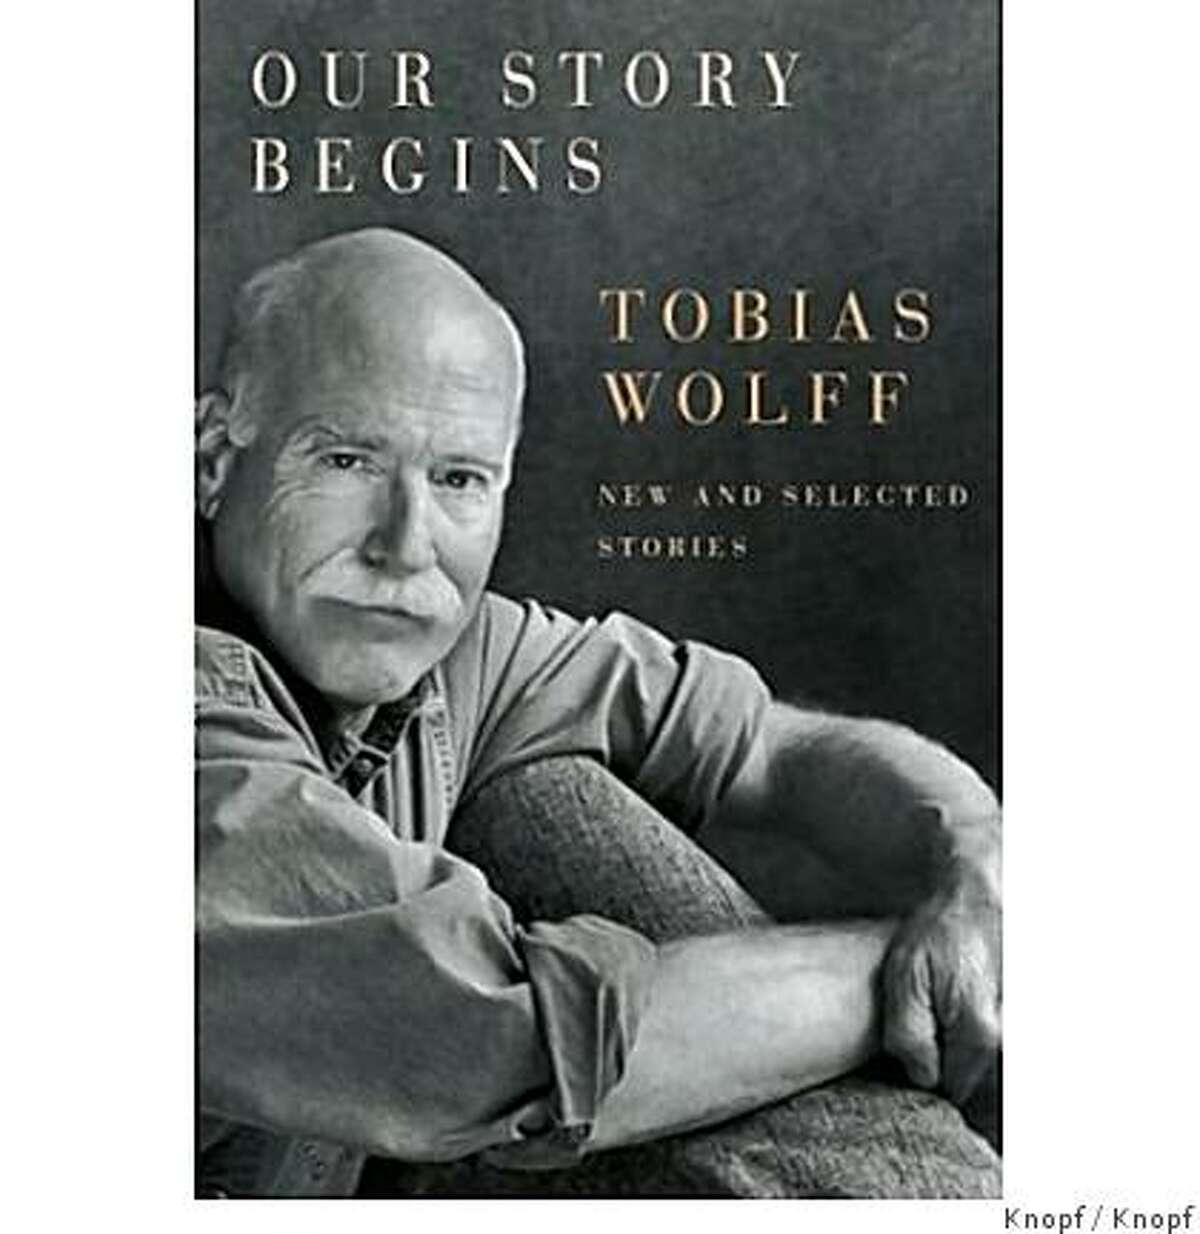 Our Story Begins: New and Selected Stories (Hardcover)by Tobias Wolff (Author)